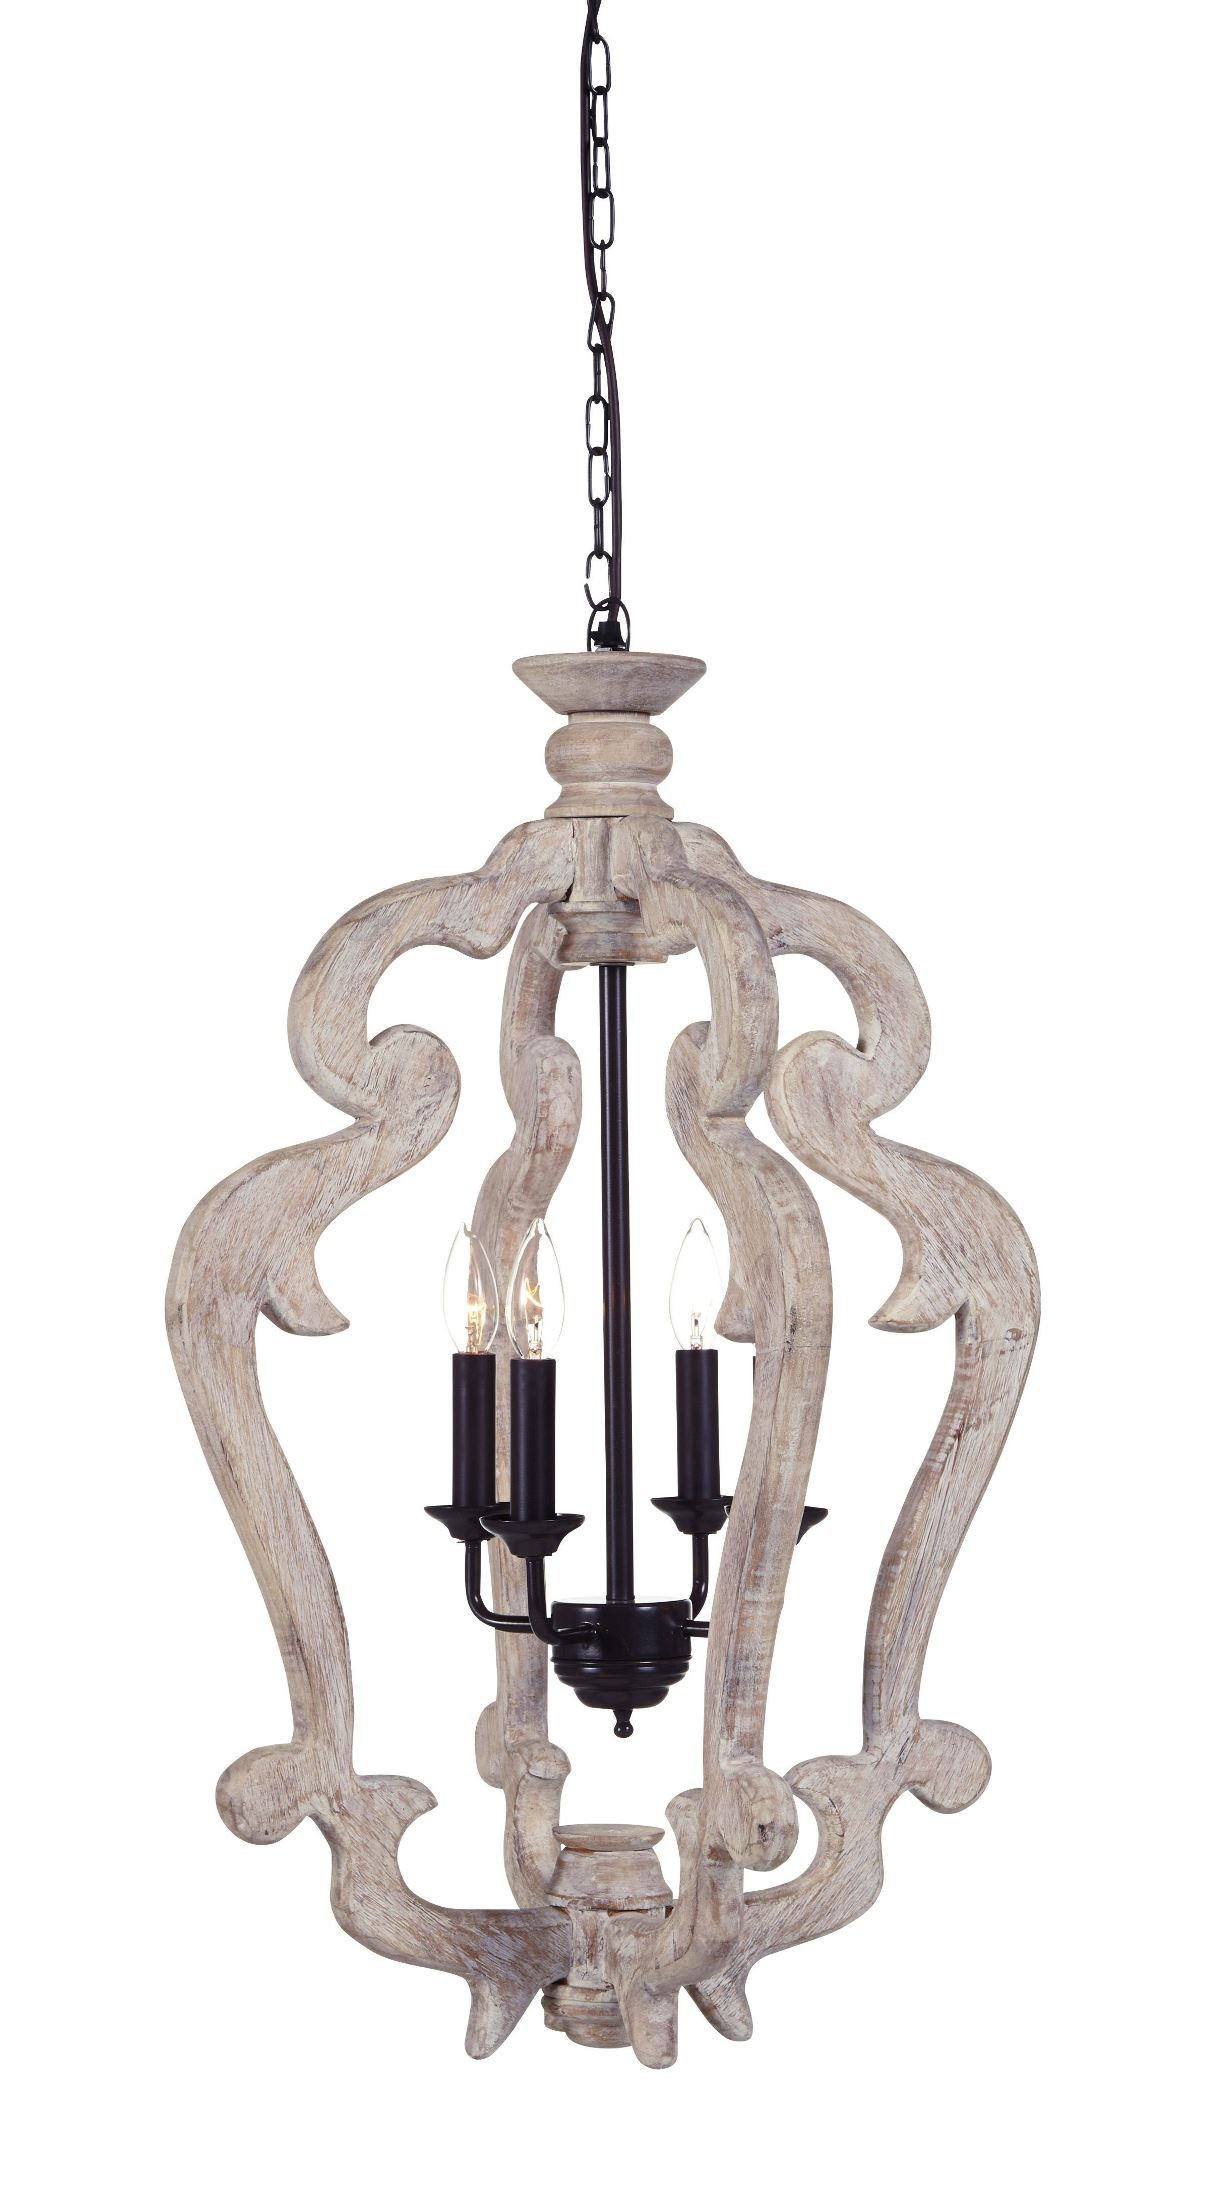 Jocelin Distressed White Wood Pendant Light From Ashley Coleman Furniture